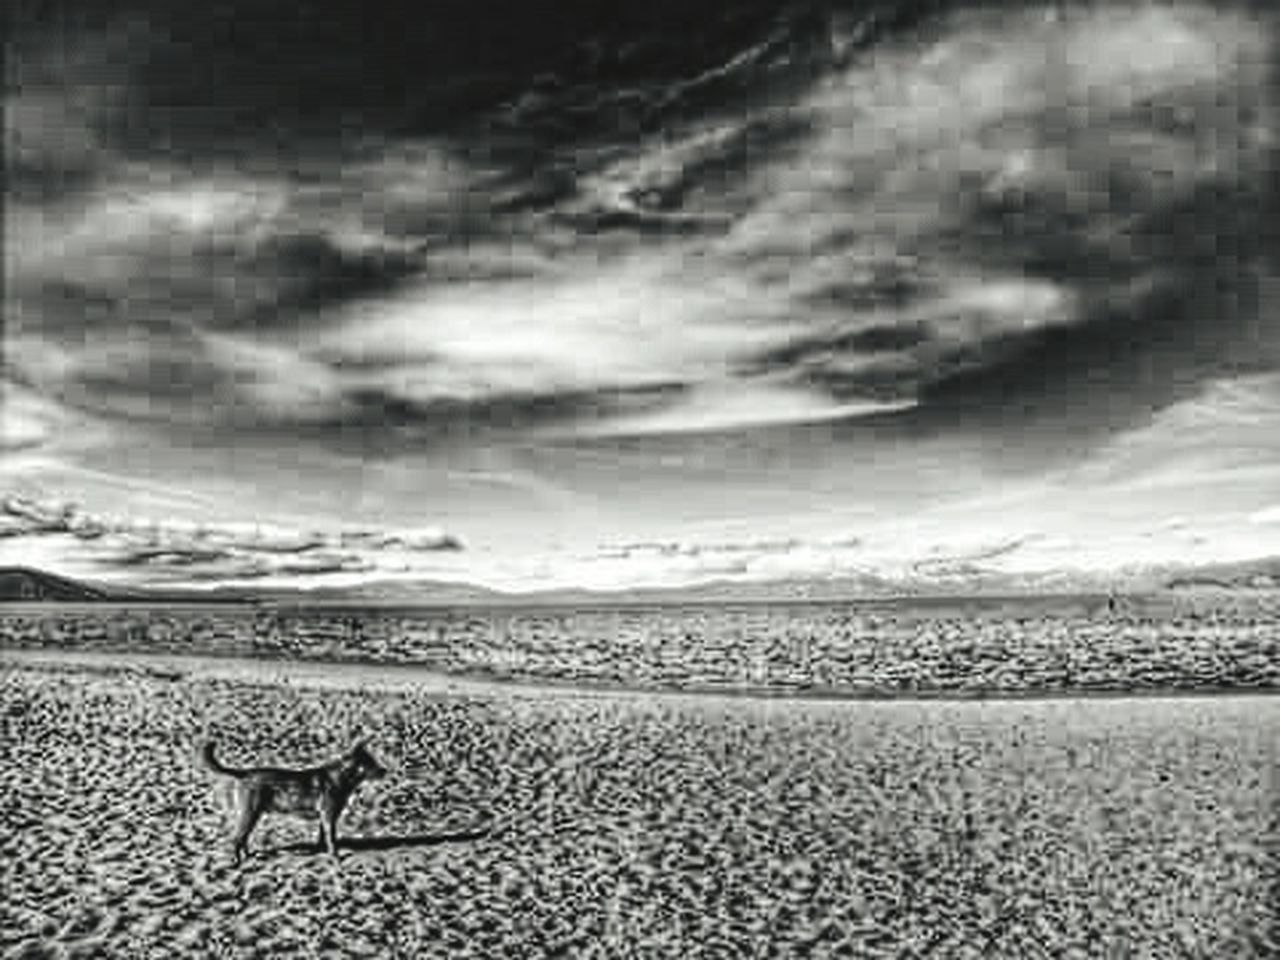 one animal, dramatic sky, nature, animals in the wild, animal themes, outdoors, cloud - sky, animal wildlife, no people, mammal, sky, landscape, scenics, safari animals, desert, beauty in nature, day, storm cloud, ostrich, bird, cheetah